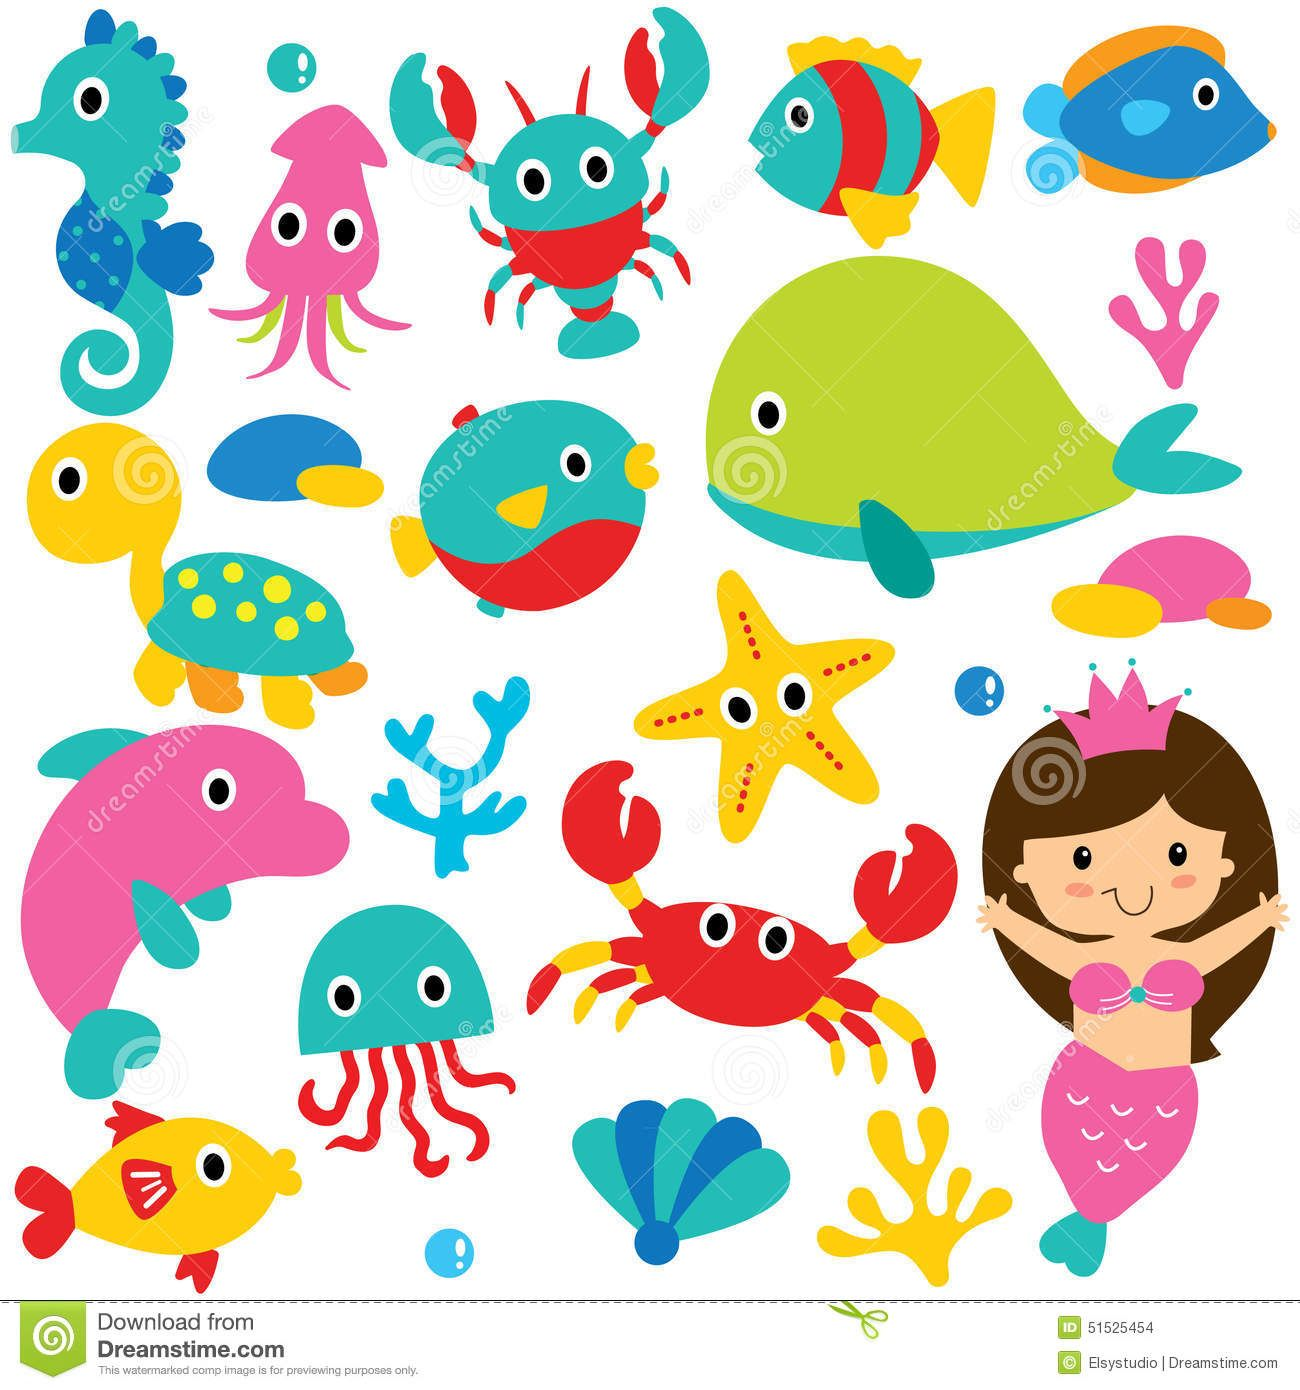 Cute Ocean Clip Art Vector file. It can be scaled to any